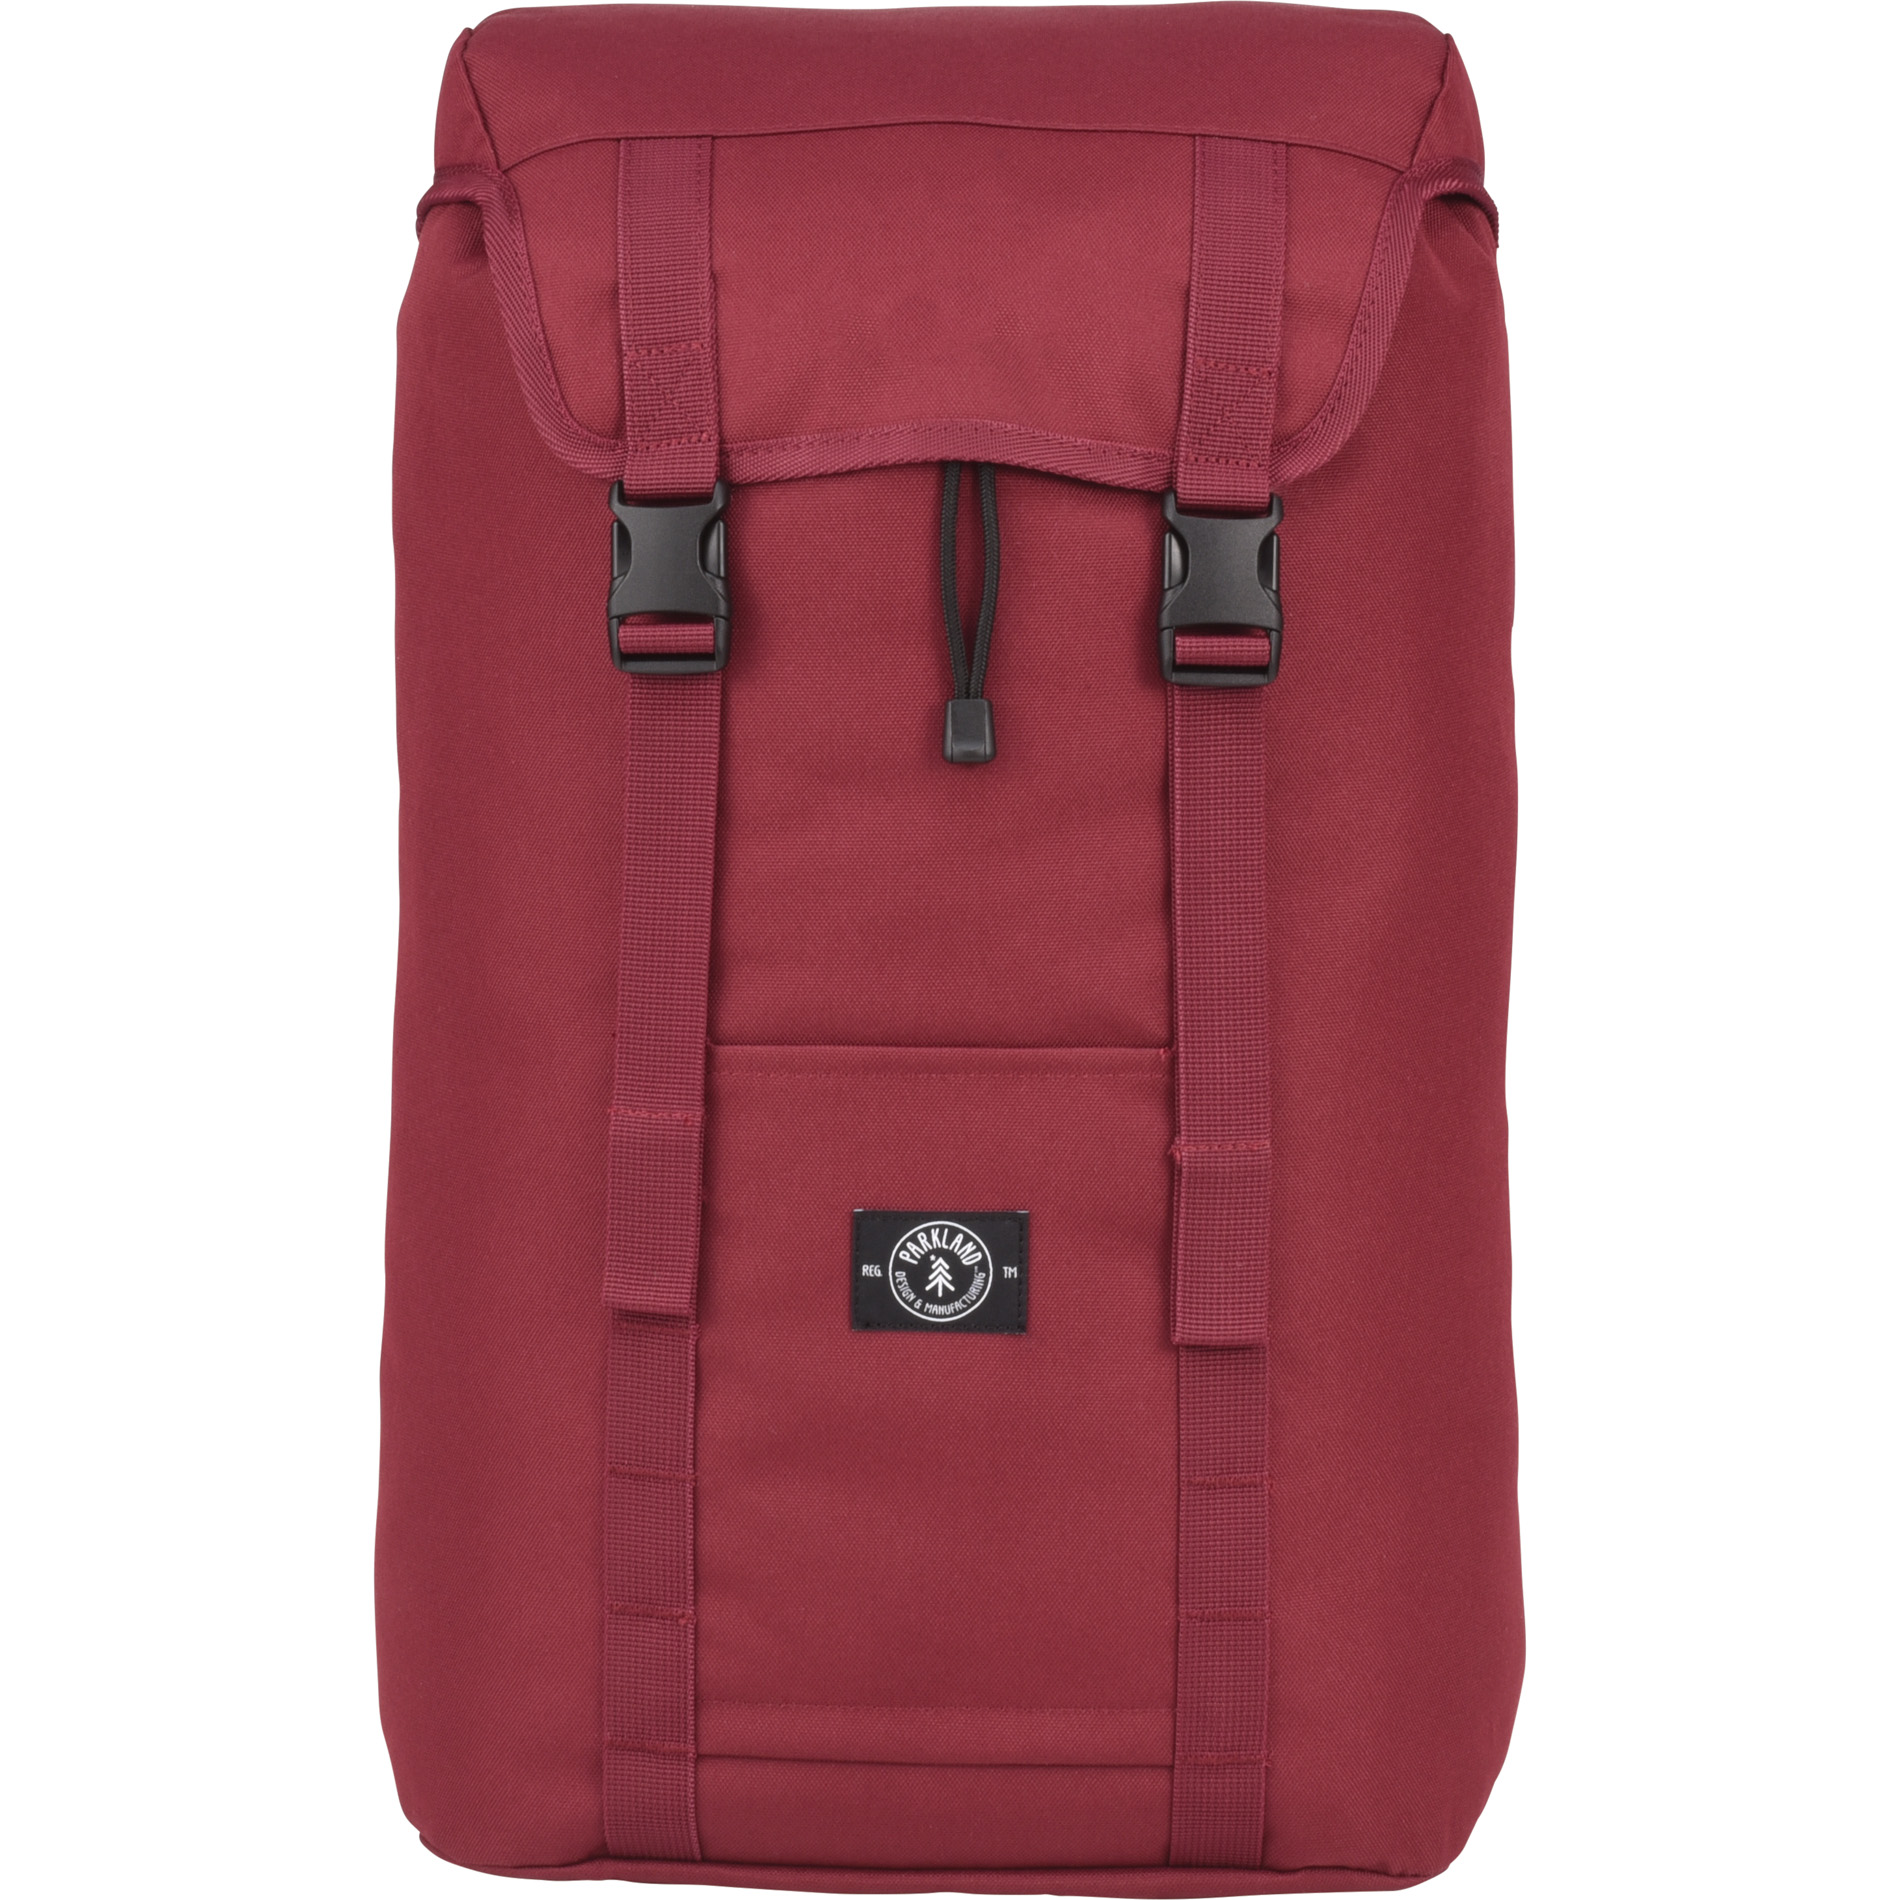 "Parkland 7275-02 - Westport 15"" Computer Backpack"